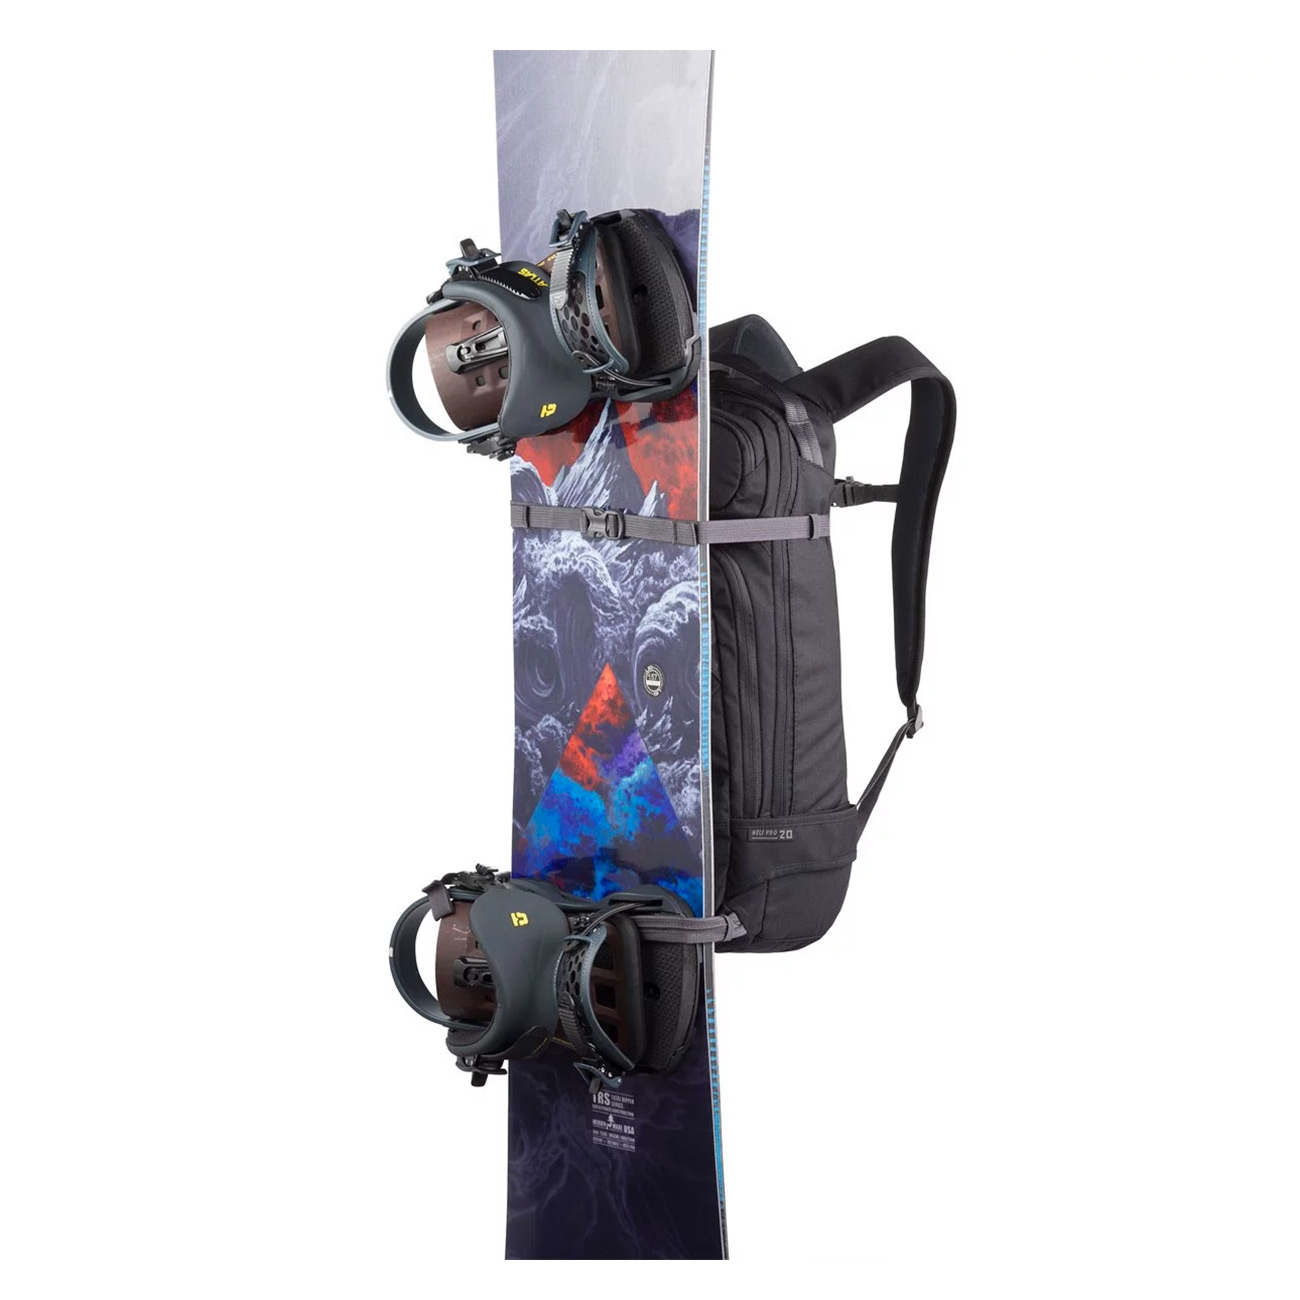 Dakine Heli Pro 20L Snow Backpack in Black vertical snowboard carry straps cd40bd6798